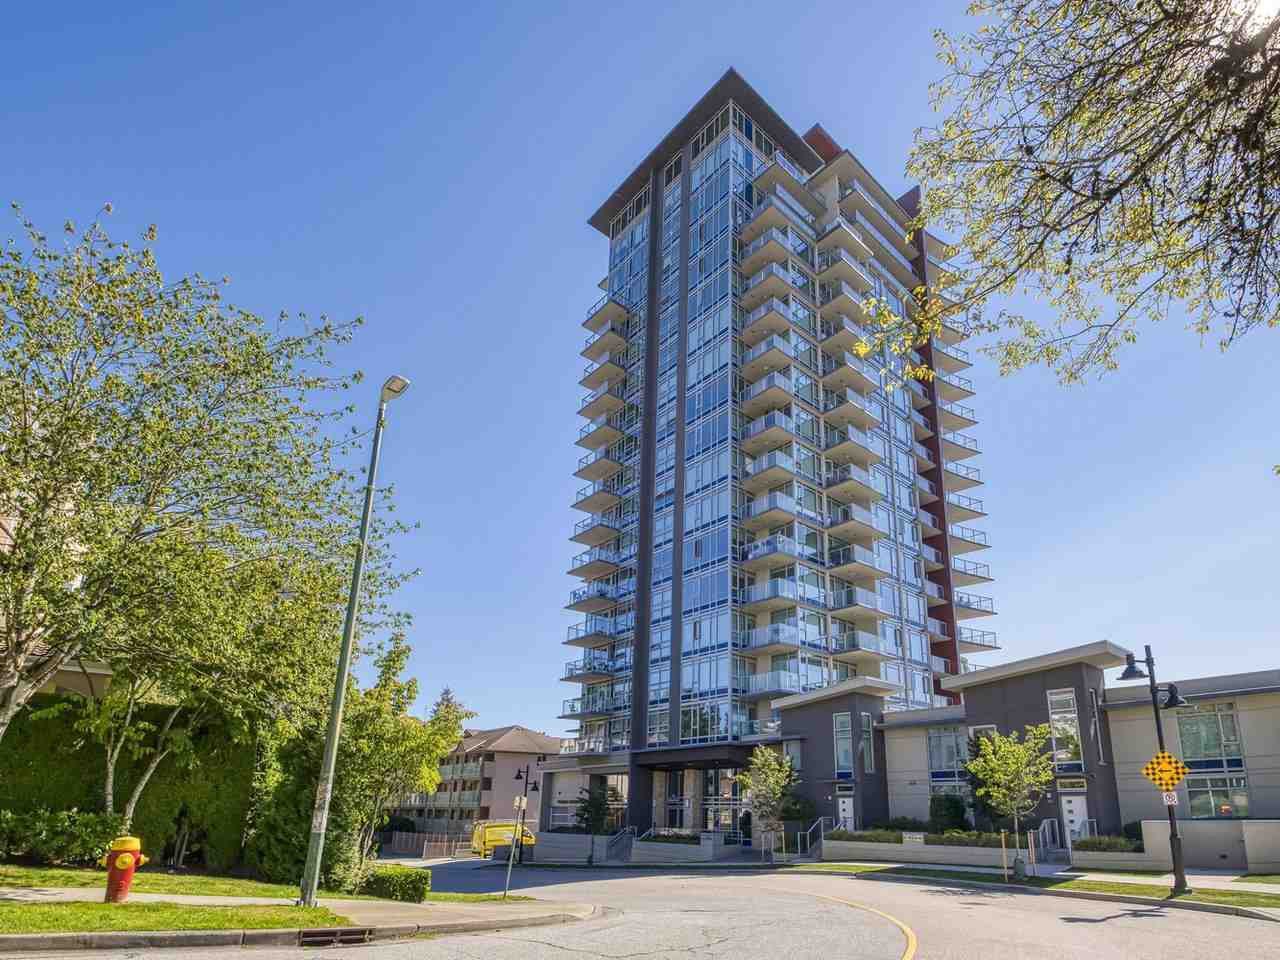 """Main Photo: 1205 518 WHITING Way in Coquitlam: Coquitlam West Condo for sale in """"UNION"""" : MLS®# R2496616"""